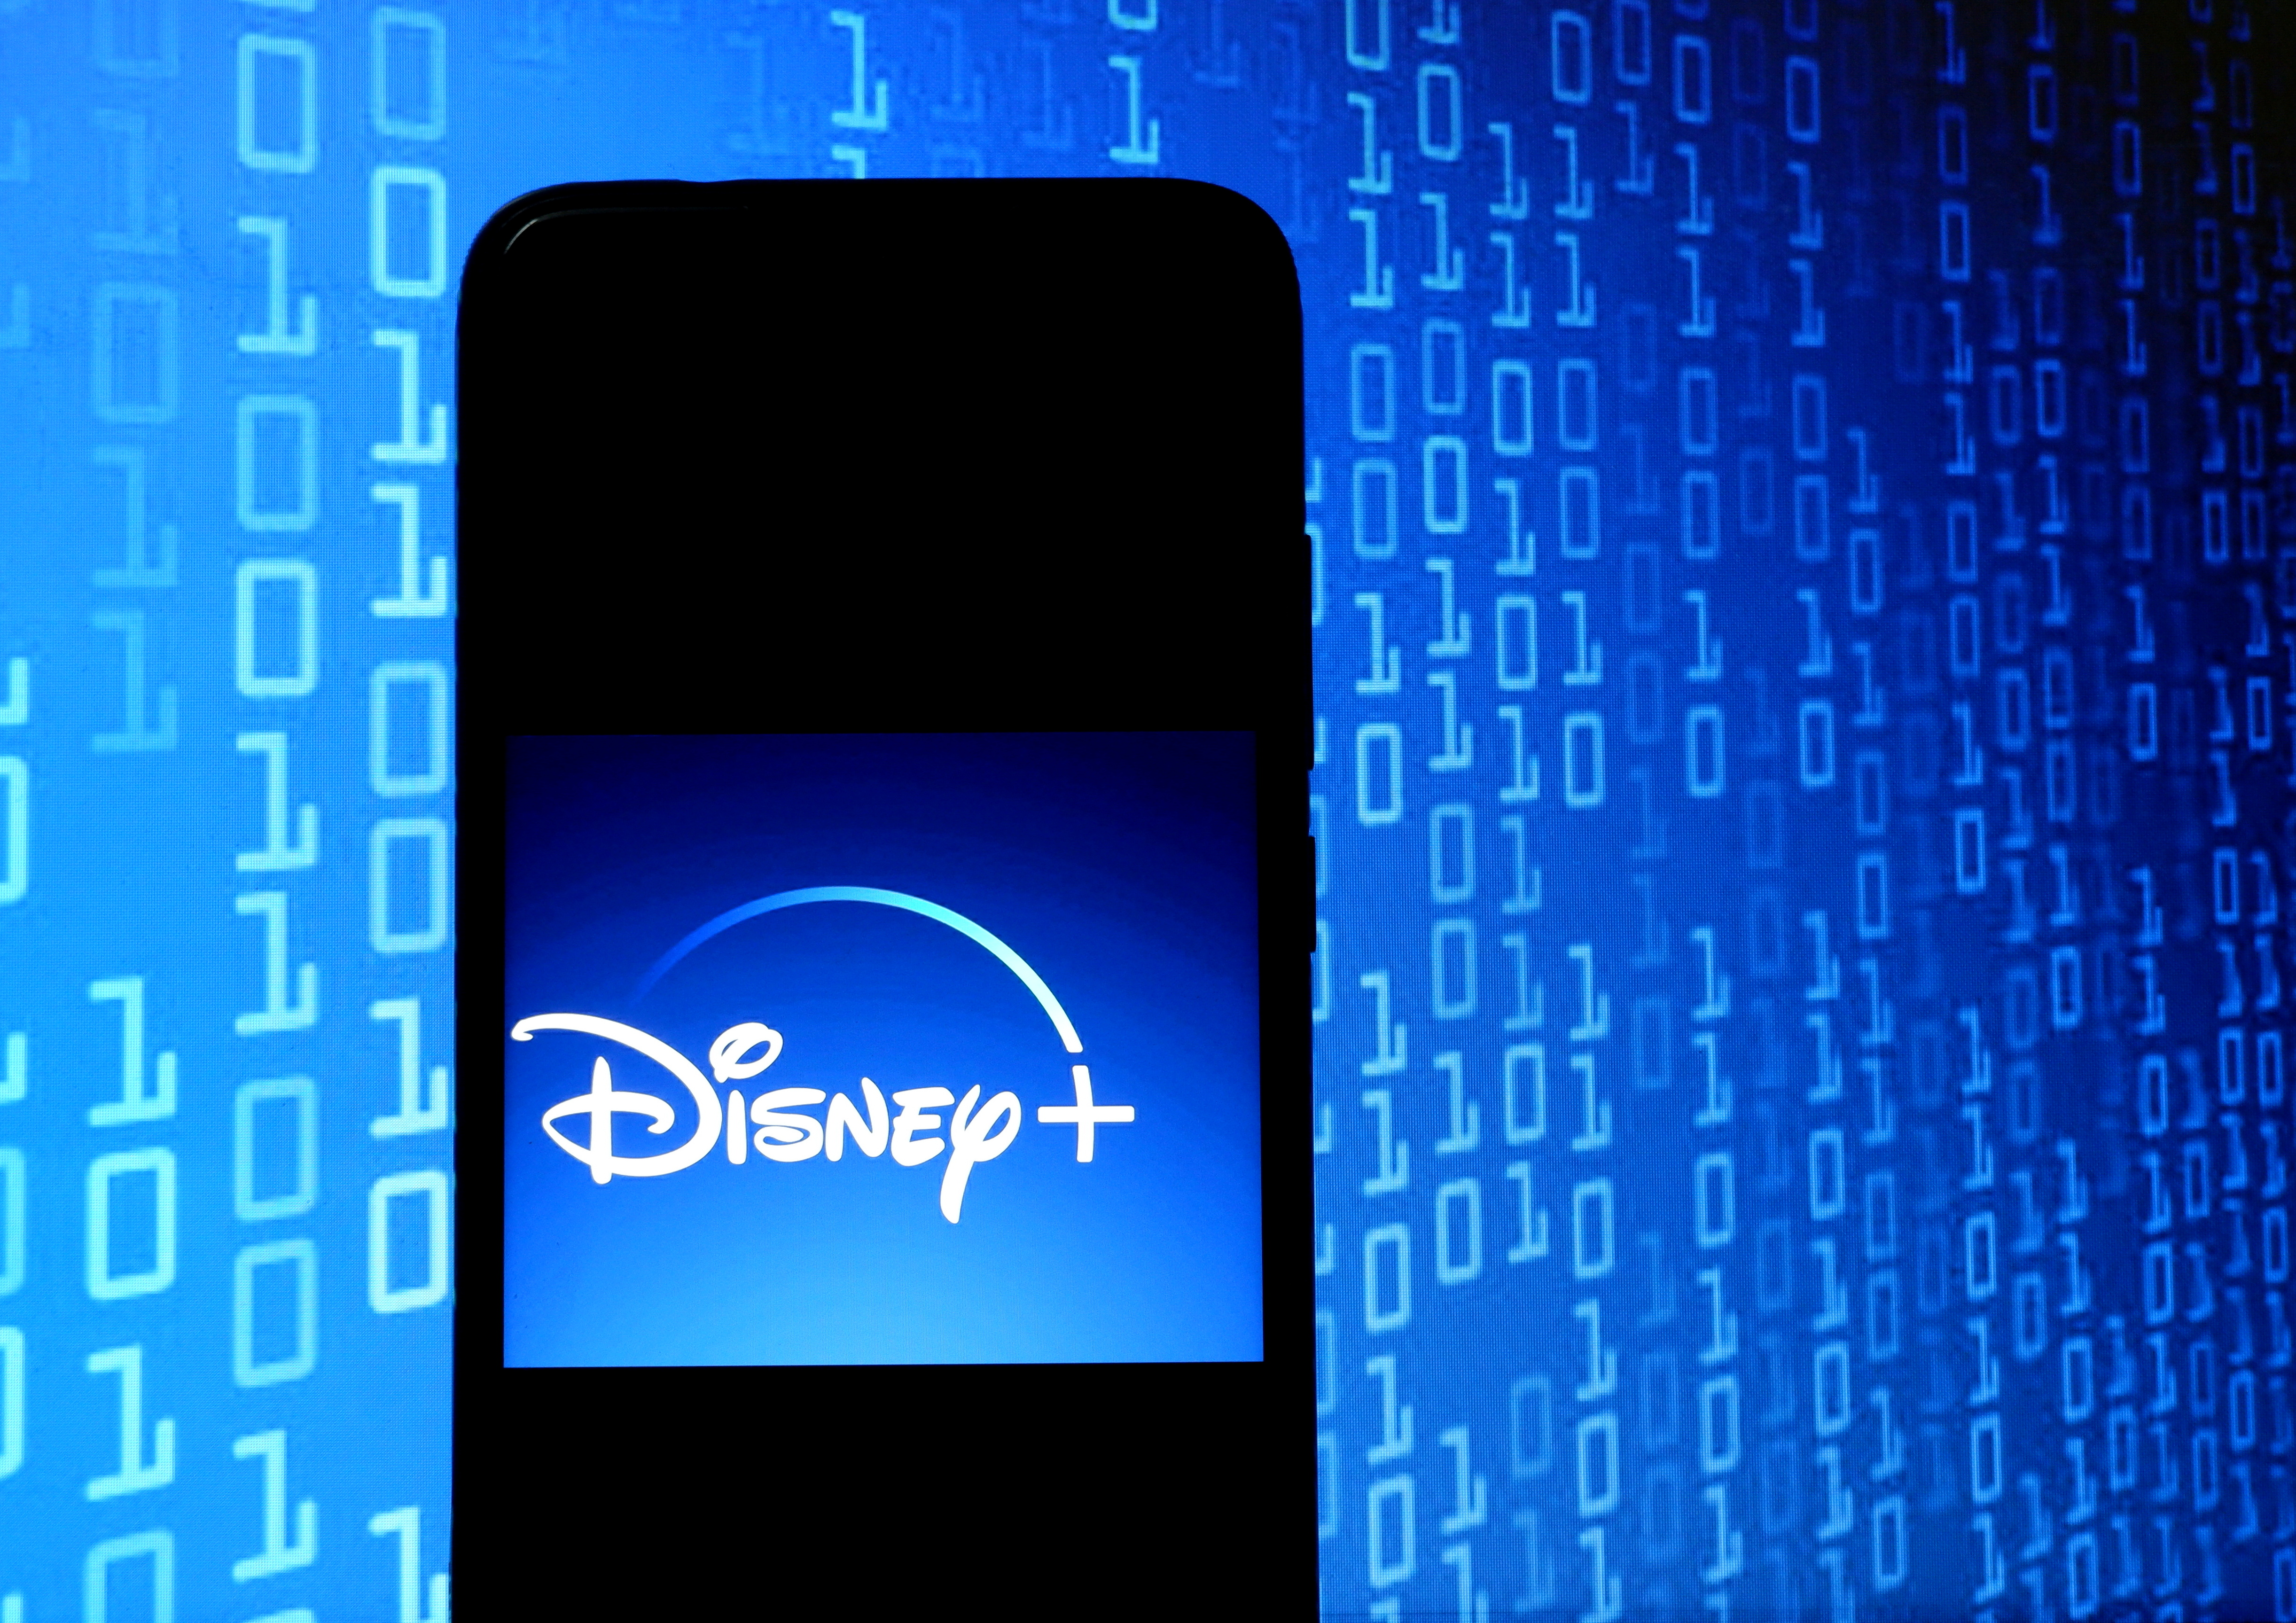 25% of users watching Netflix on their iPhones also watch Disney+